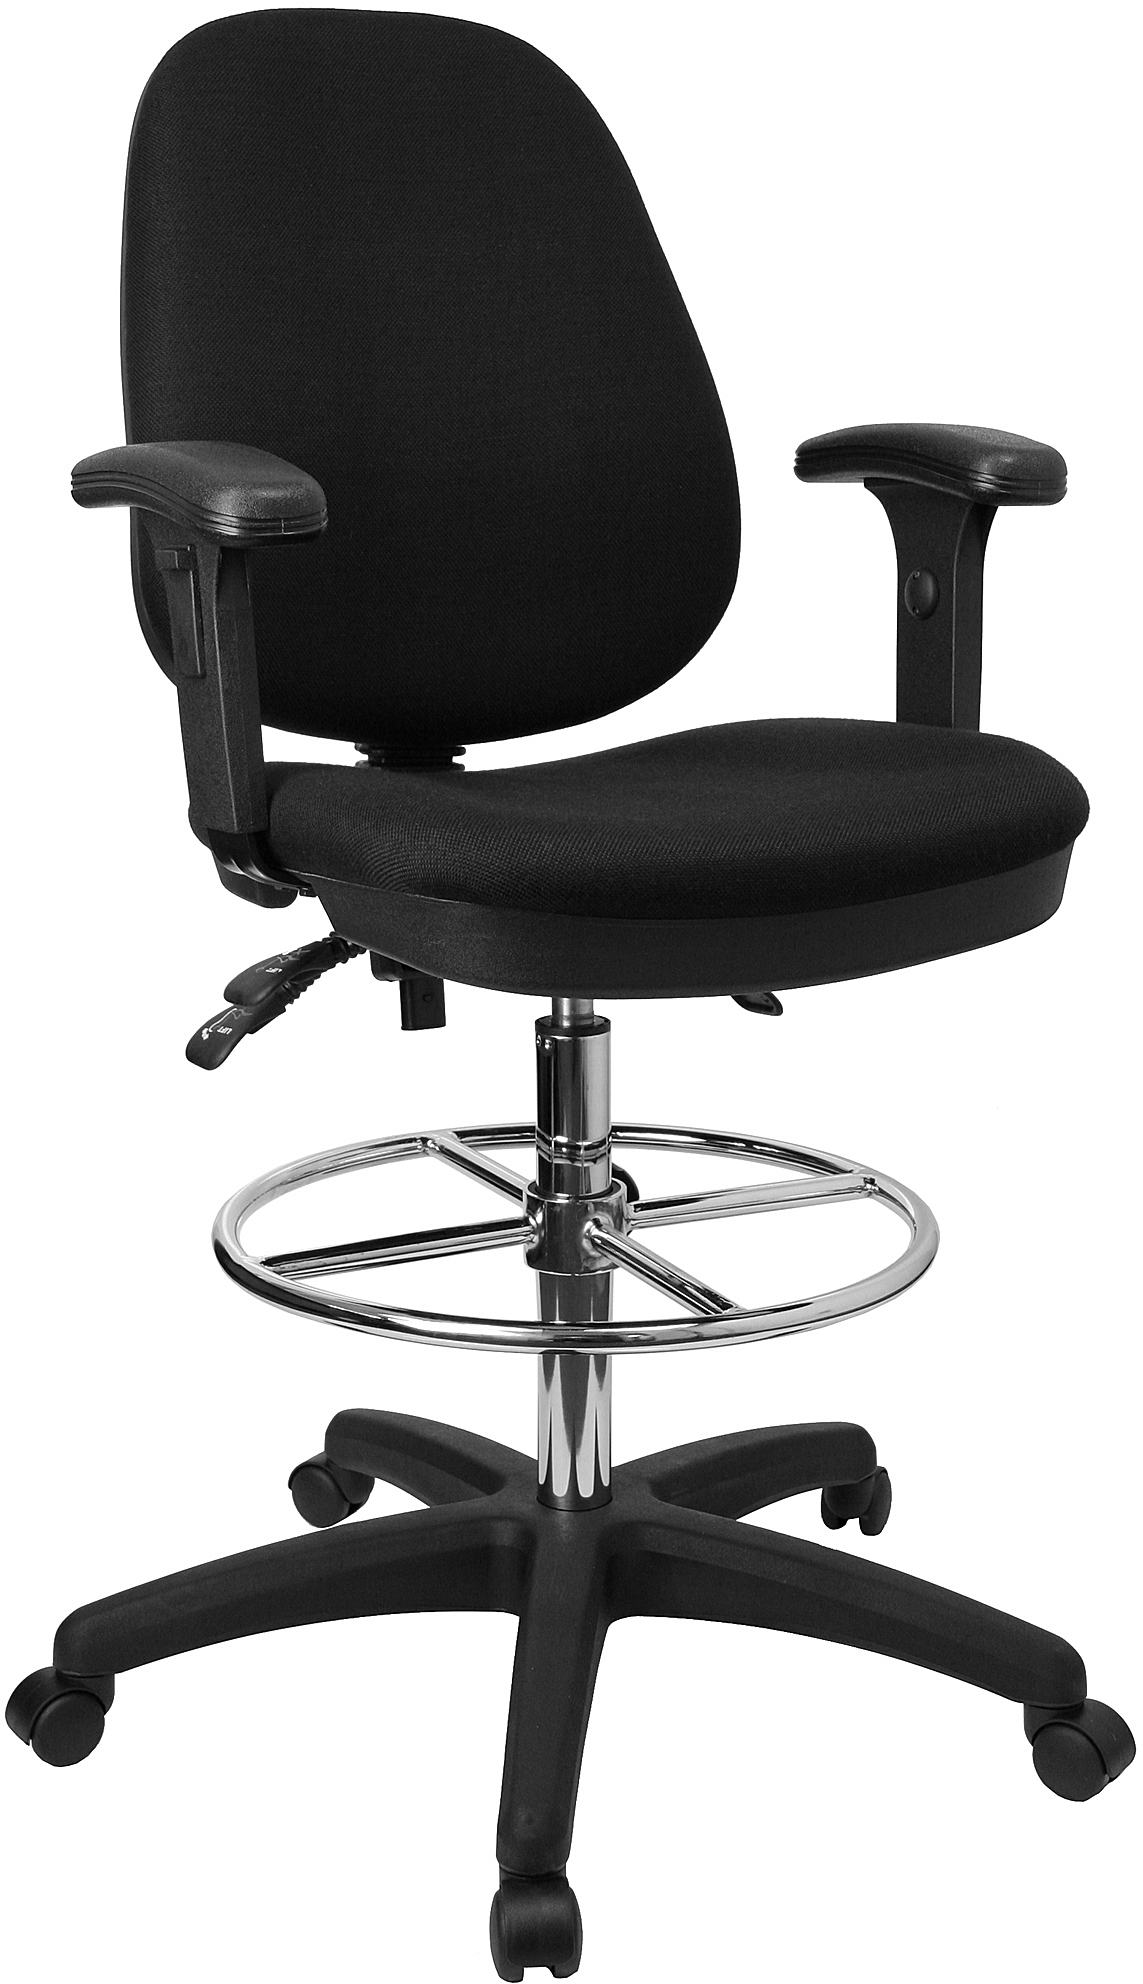 ergonomic drafting chair with arms crate and barrell chairs flash multi functional triple paddle